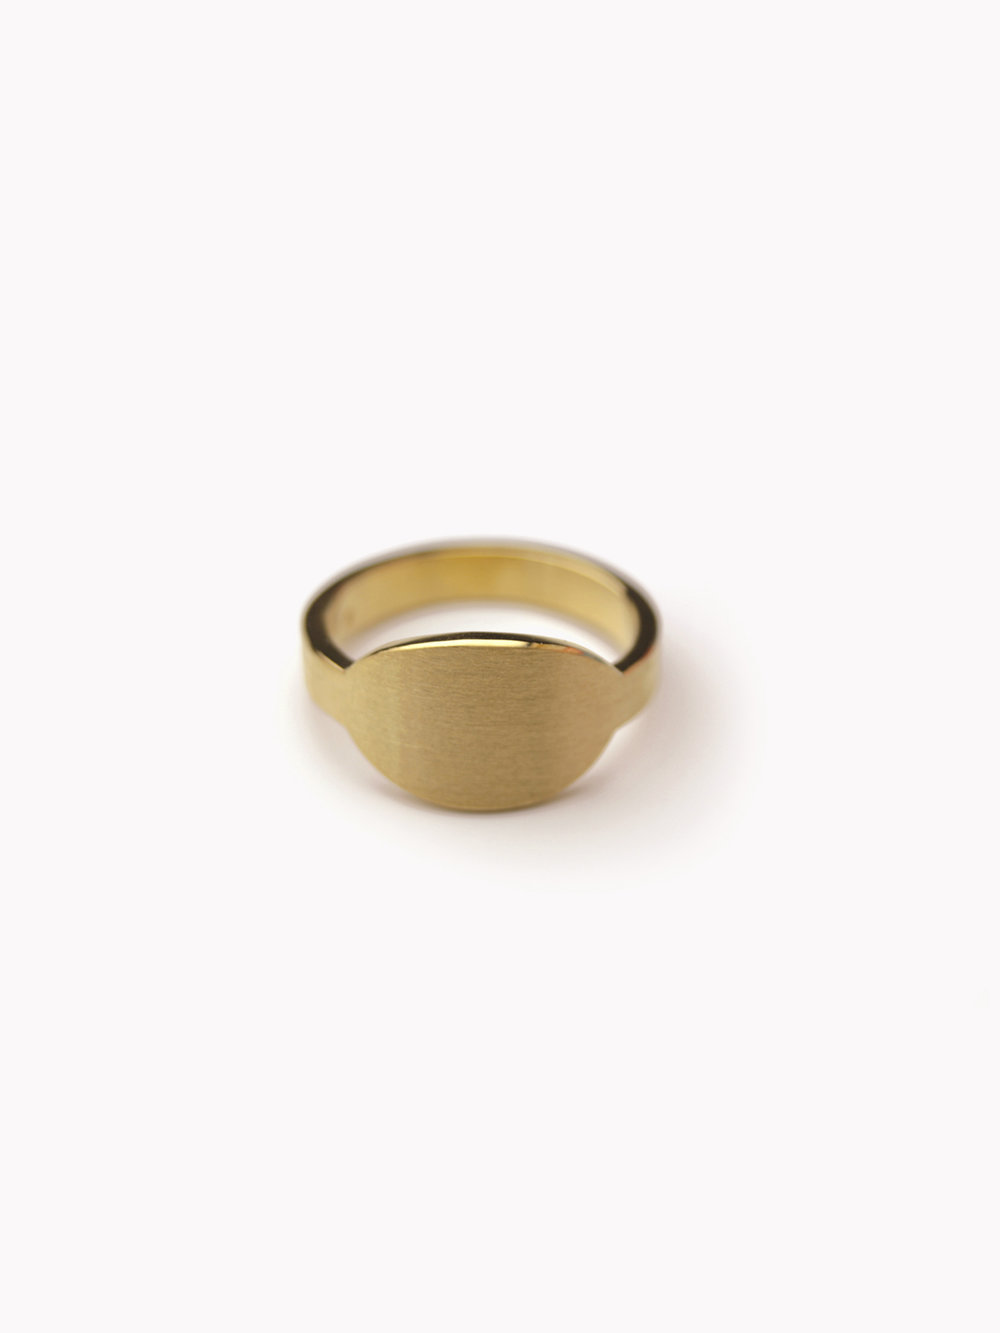 Siegelring, queroval mittelgroß in 585 Gold/ Signet ring, horizontal oval medium big in 14kt gold